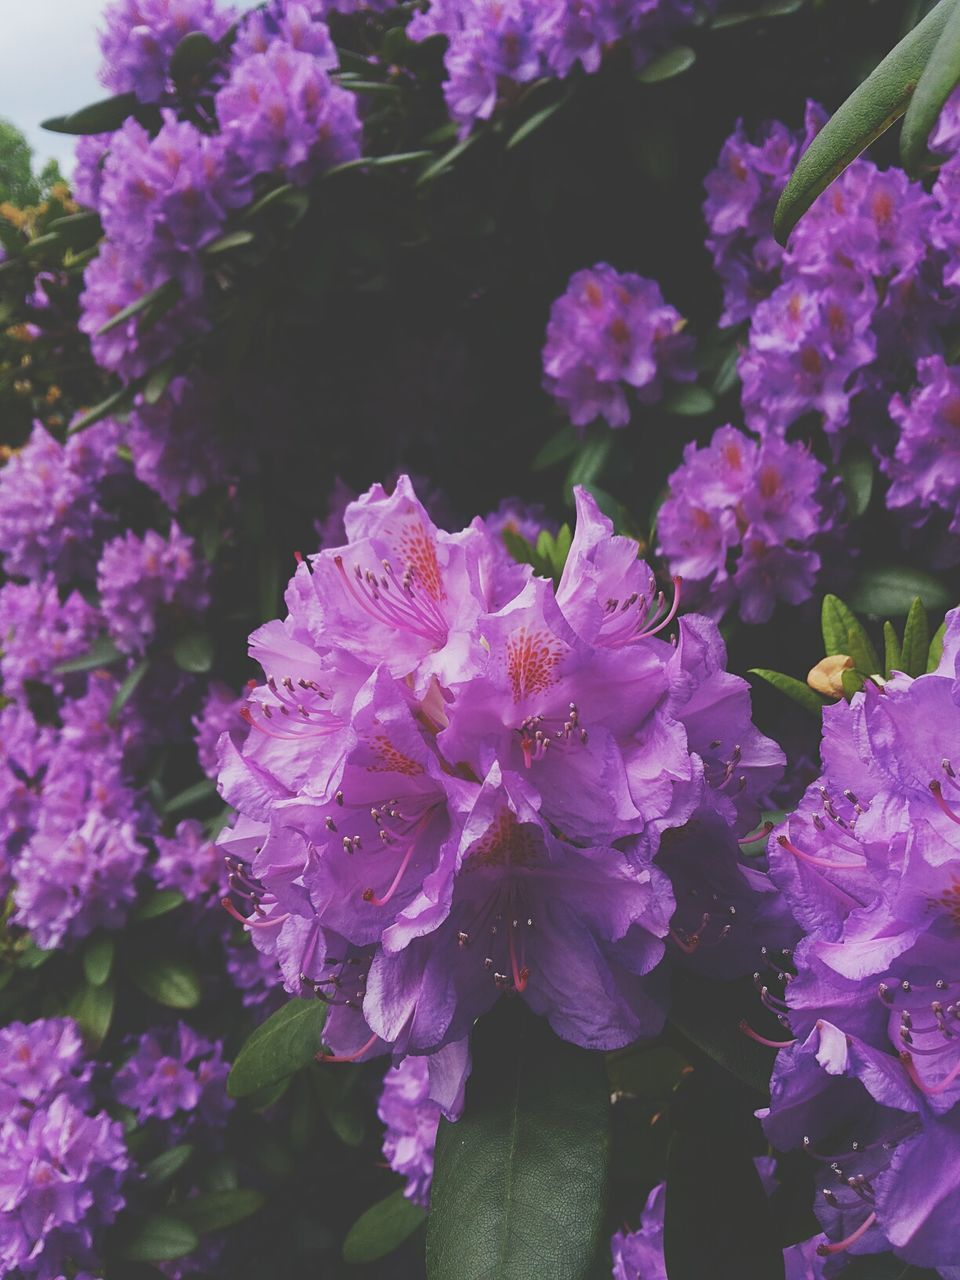 flower, purple, beauty in nature, growth, nature, petal, fragility, no people, pink color, plant, freshness, outdoors, day, close-up, flower head